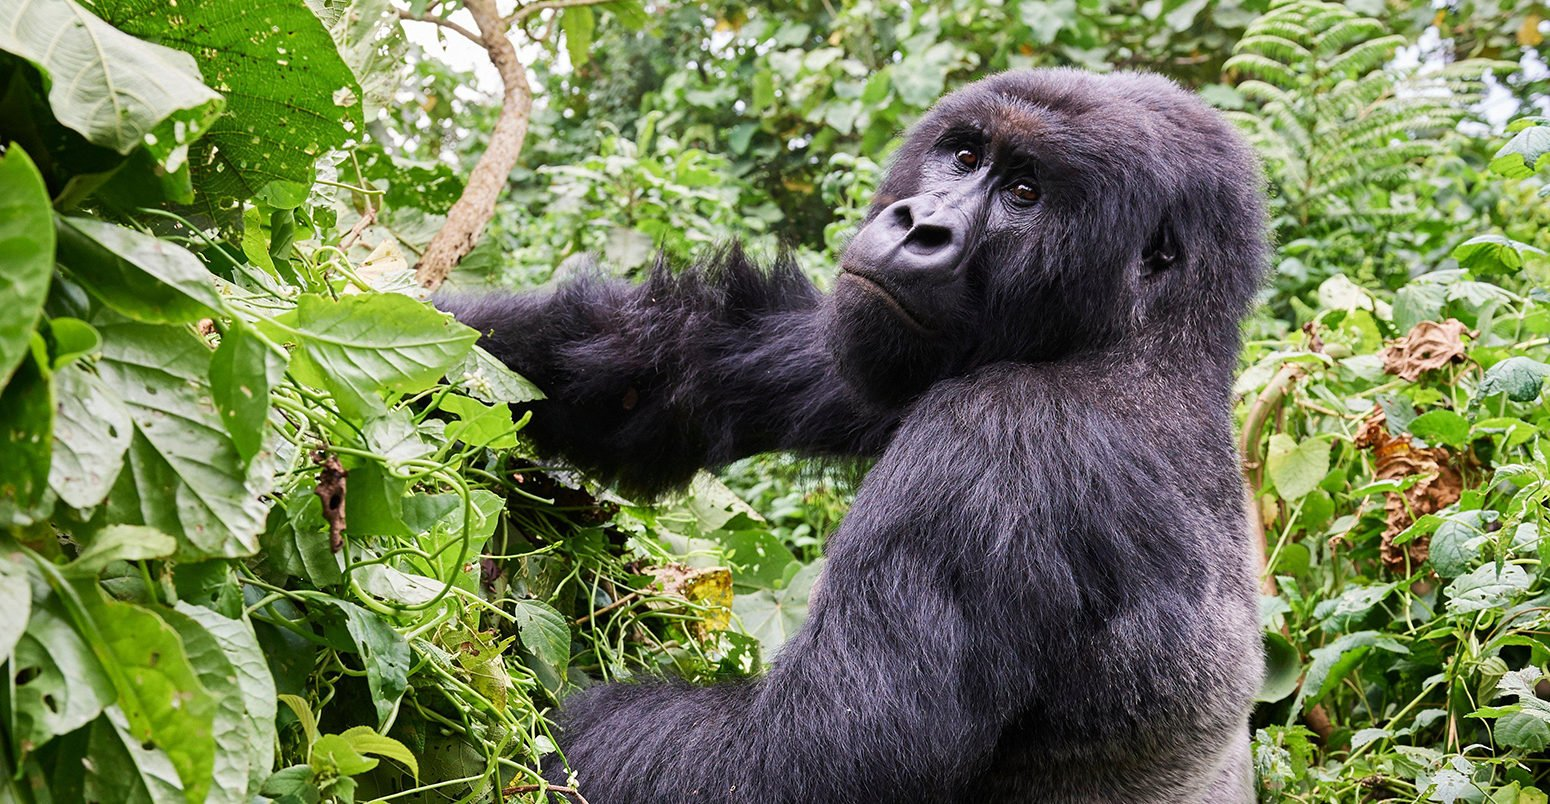 How can we save mountain gorillas from extinction